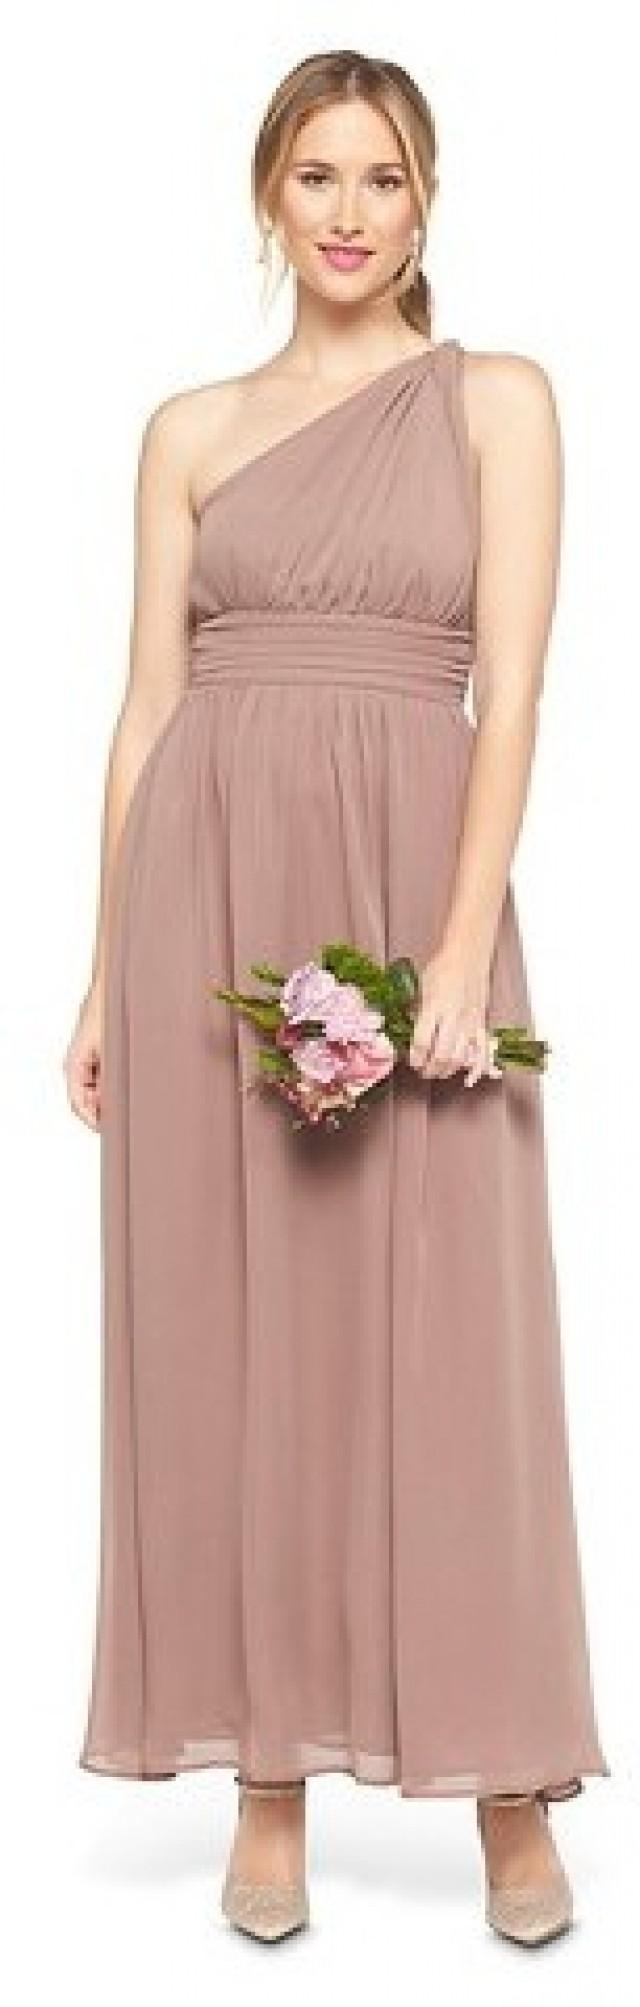 ce0353c154 Tevolio Women s Chiffon One Shoulder Maxi Bridesmaid Dress Cocoa 4  2365338  - Weddbook